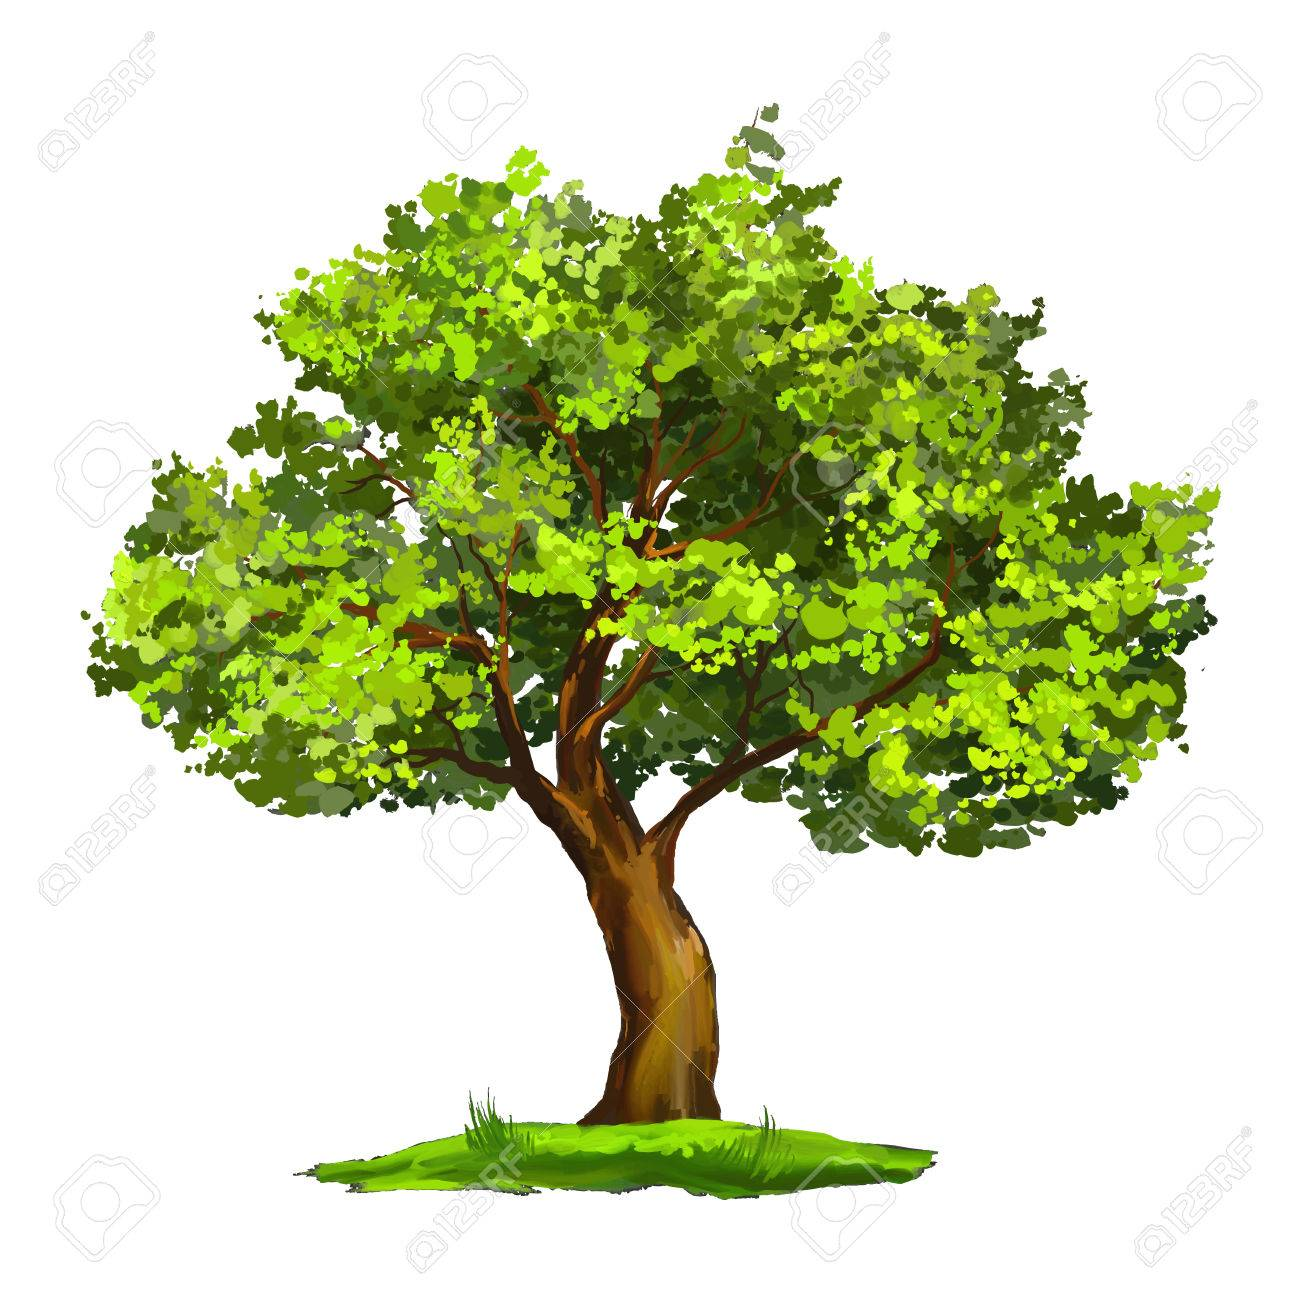 Tree vector illustration hand drawn painted watercolor - 37931790